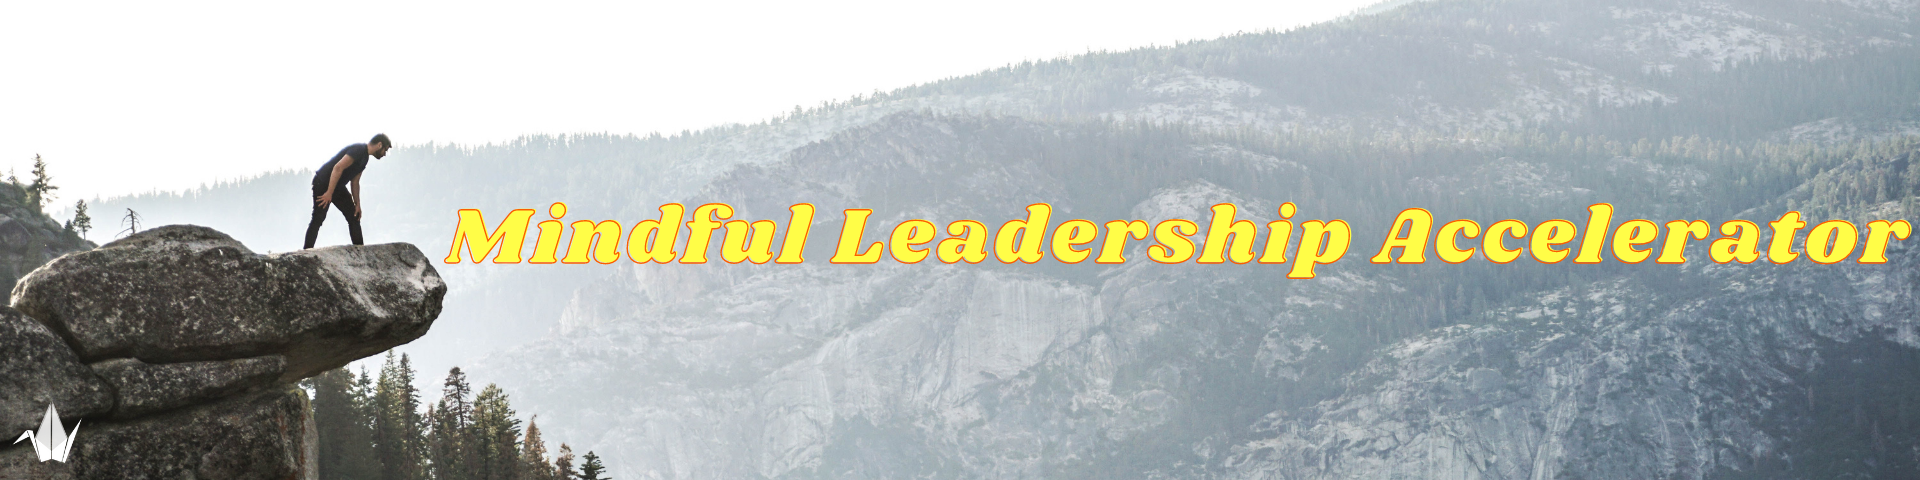 """Image of man about to jump off of a rock with class title """" Mindful Leadership Accelerator"""